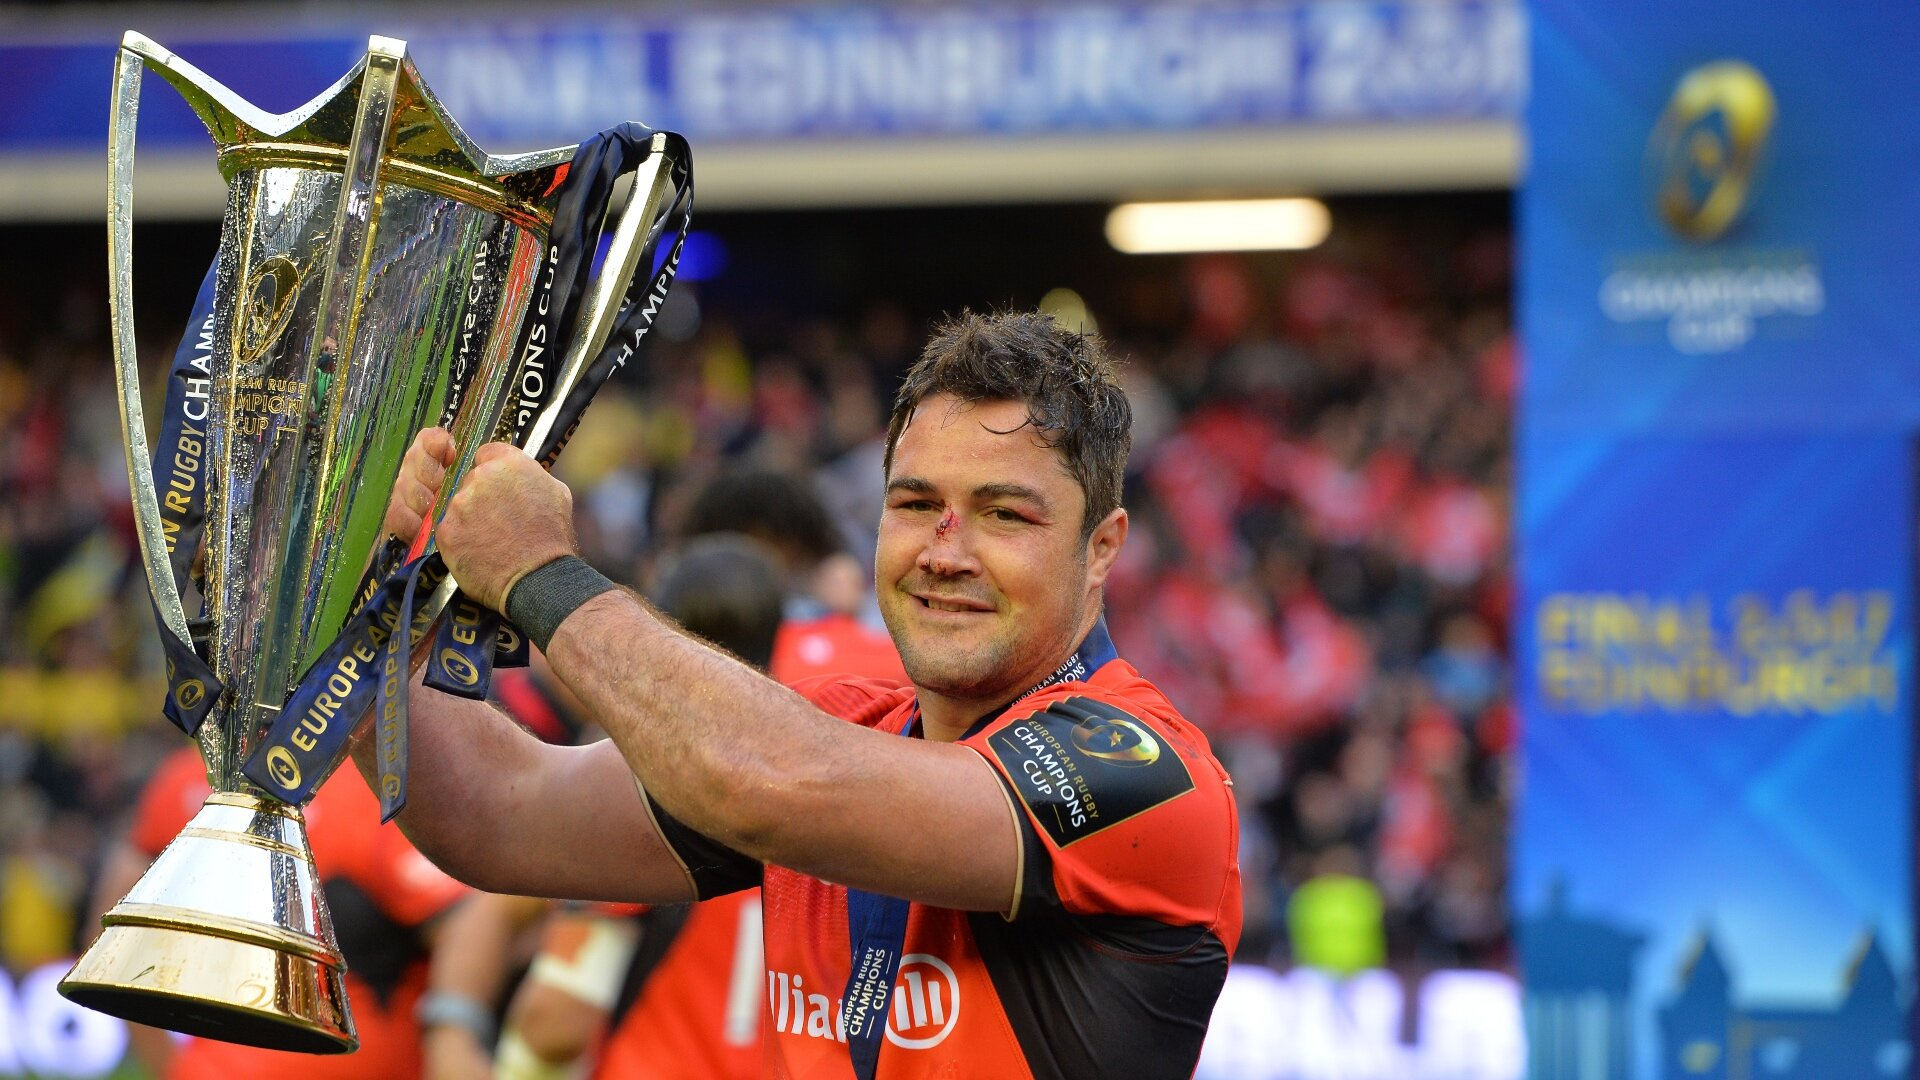 Reaction from the rugby world as Barritt confirms Saracens exit